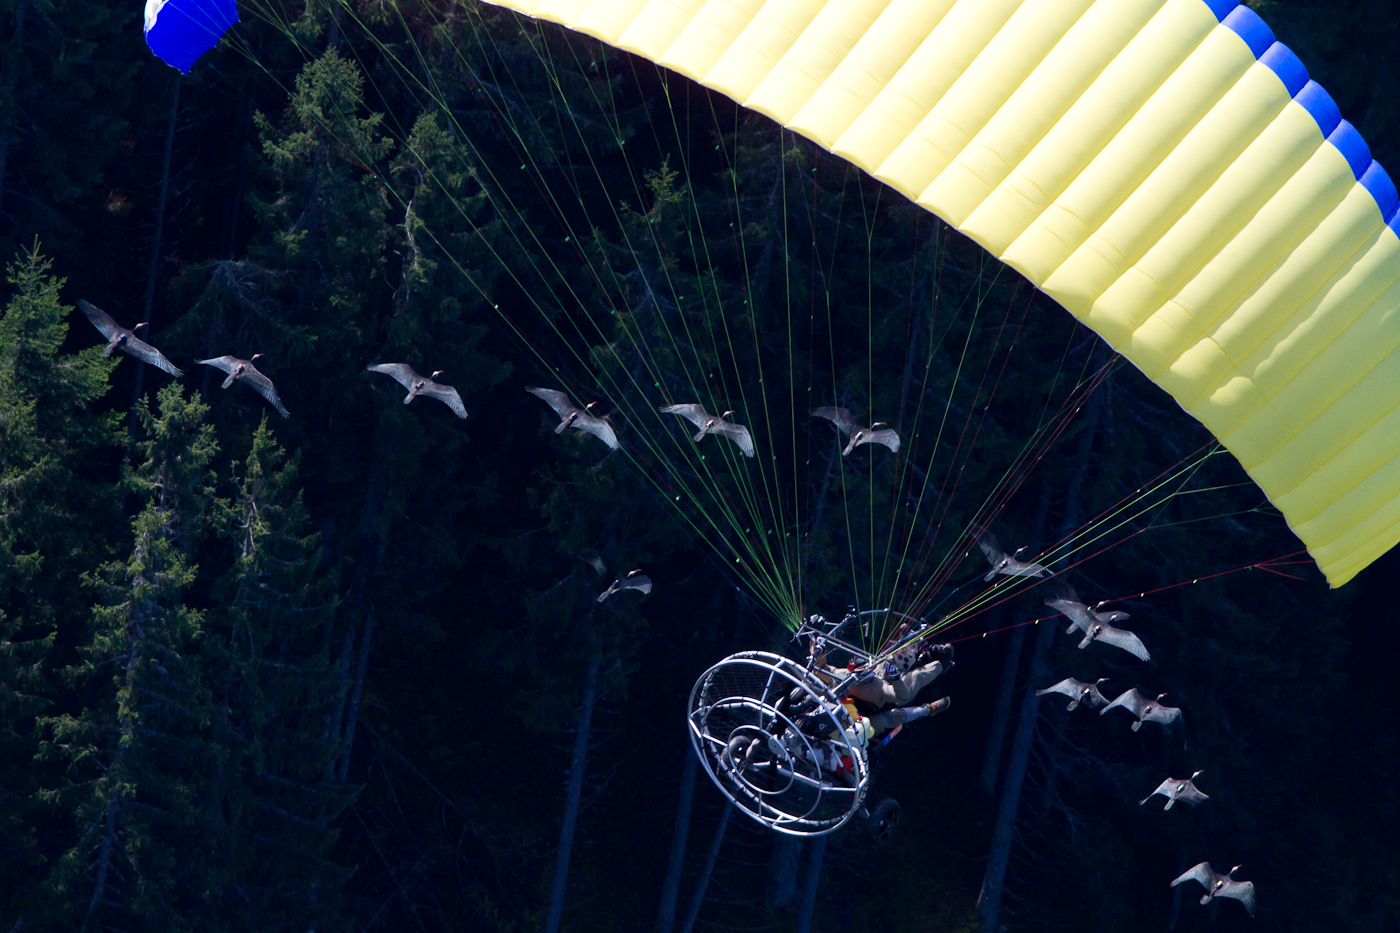 Ibis and ultralight, flying in formation